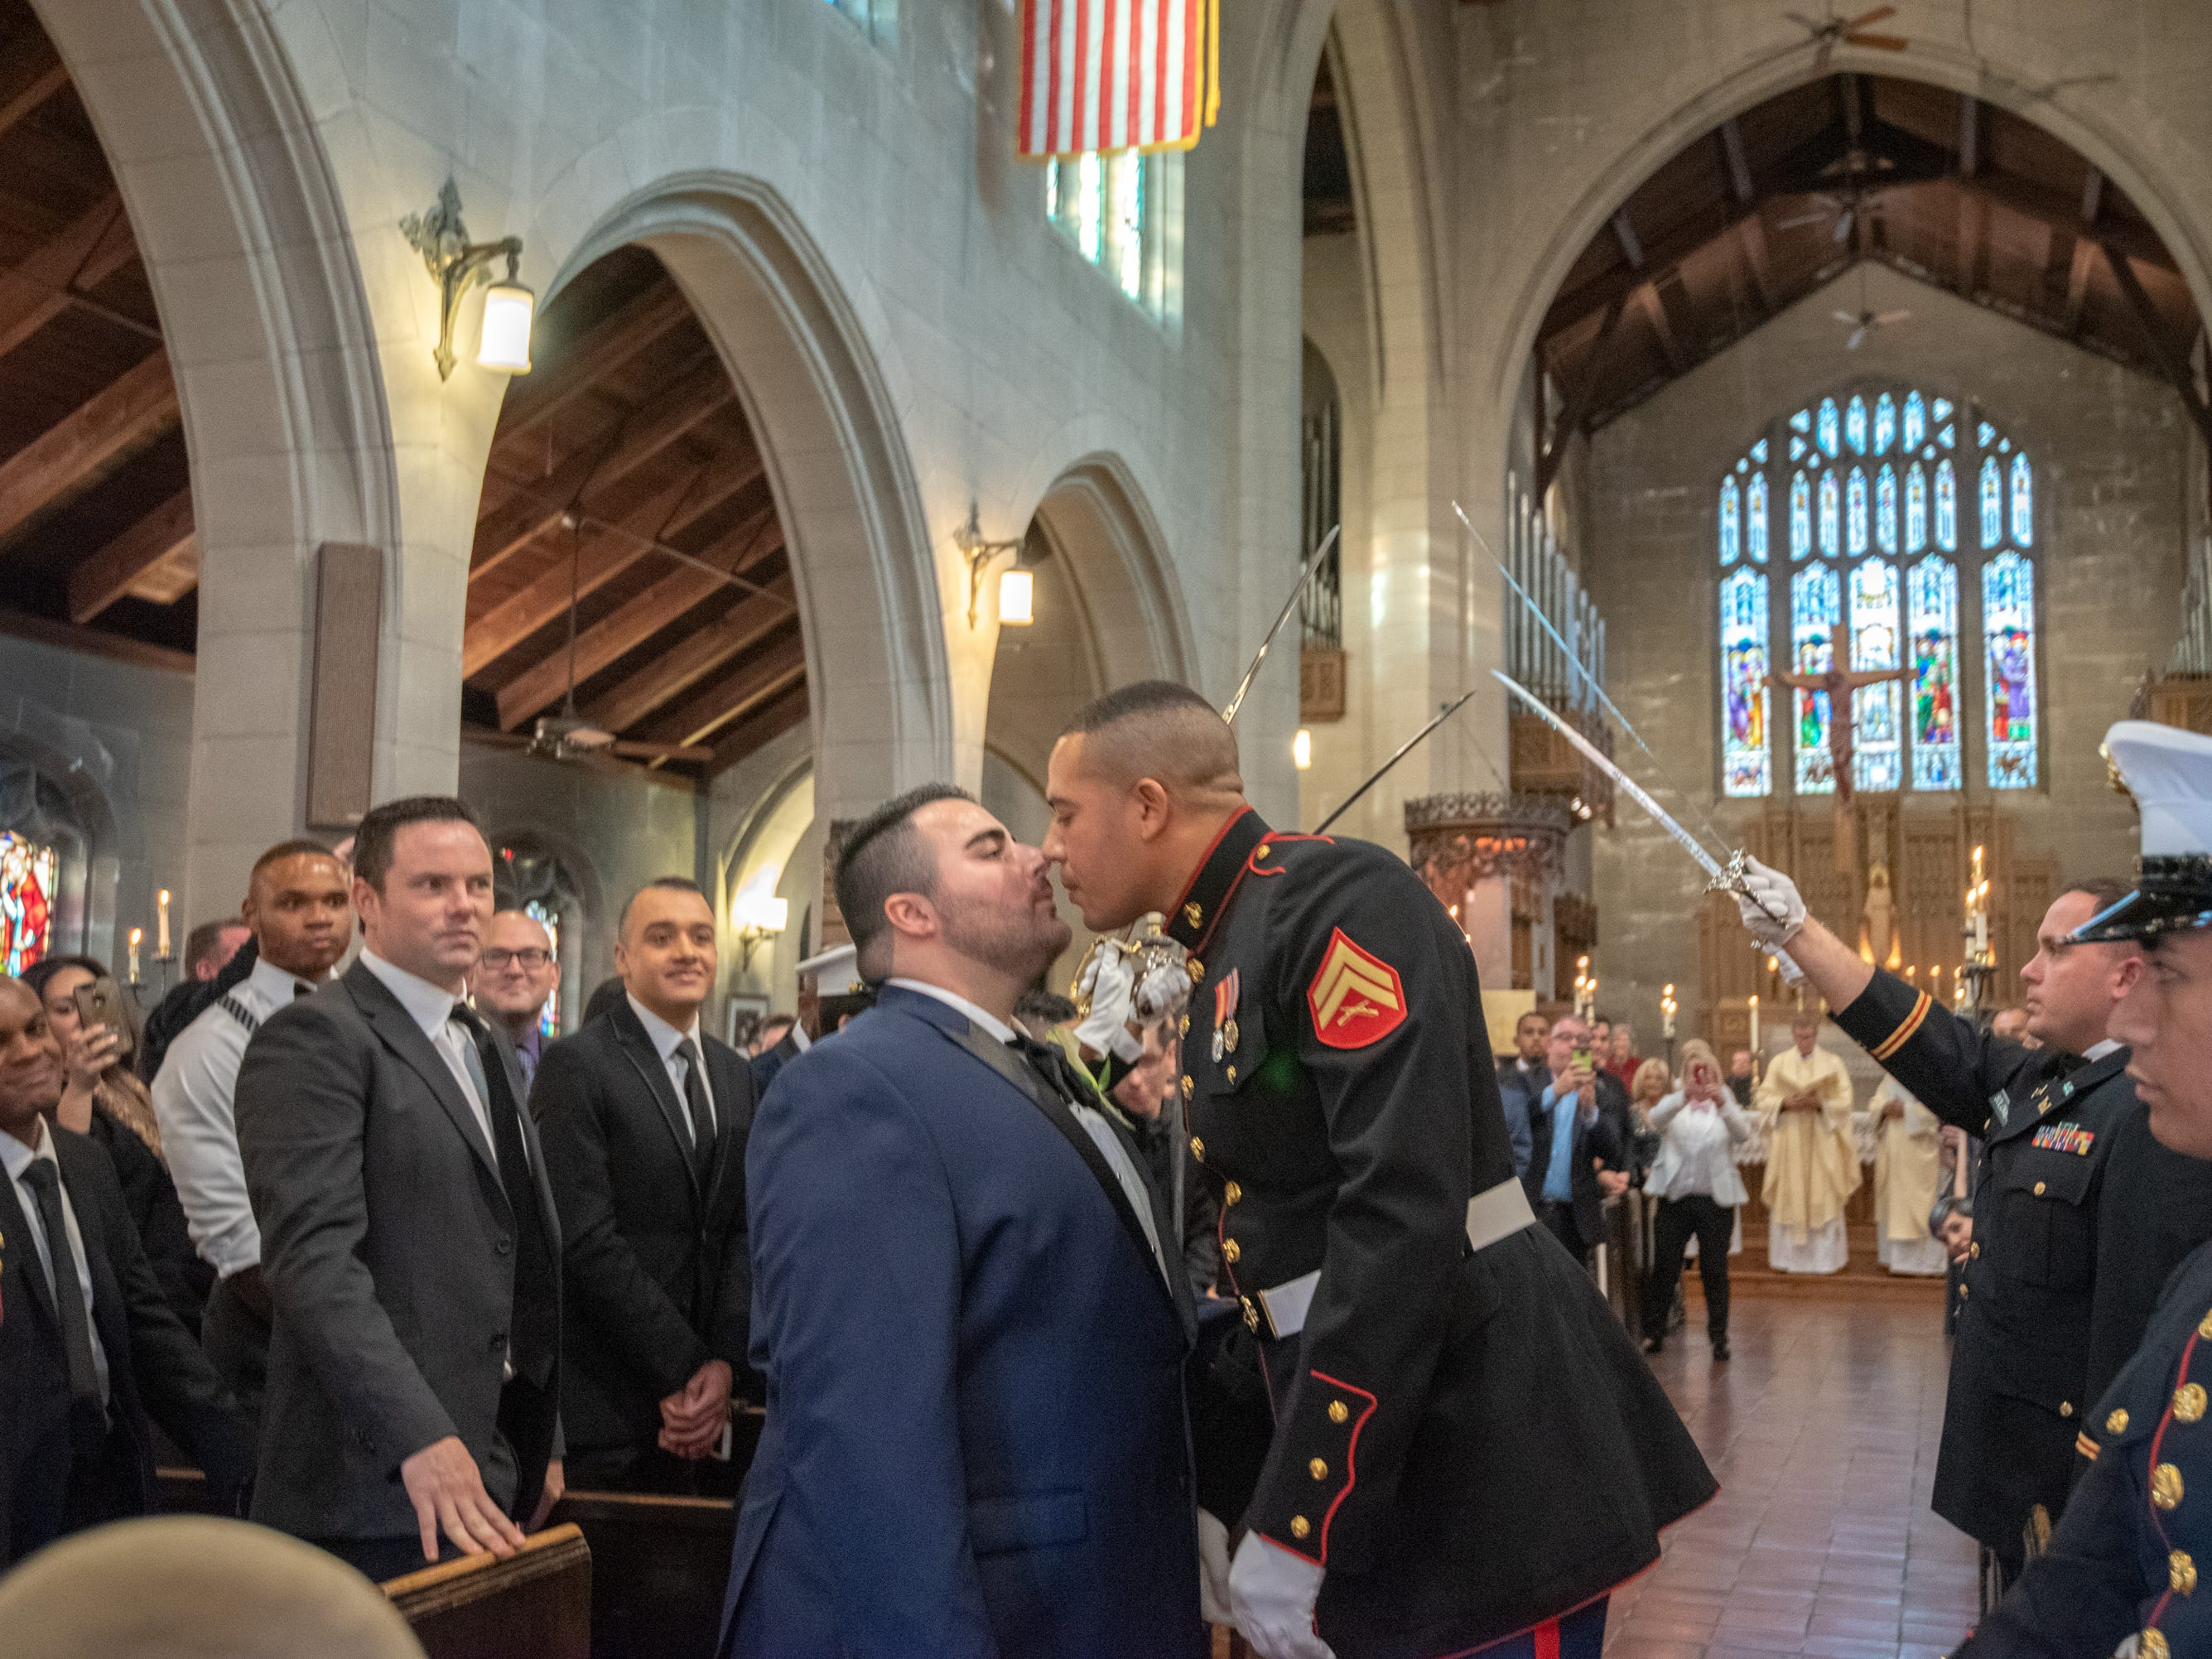 Christian Fuscarino, (left) Executive Director of Garden State Equality, and U.S. Marine Corporal Aaron Williams (in uniform) kiss as required during the raised sword ceremony. They were married at Trinity Church in Asbury Park on Sunday, November 11, 2018.